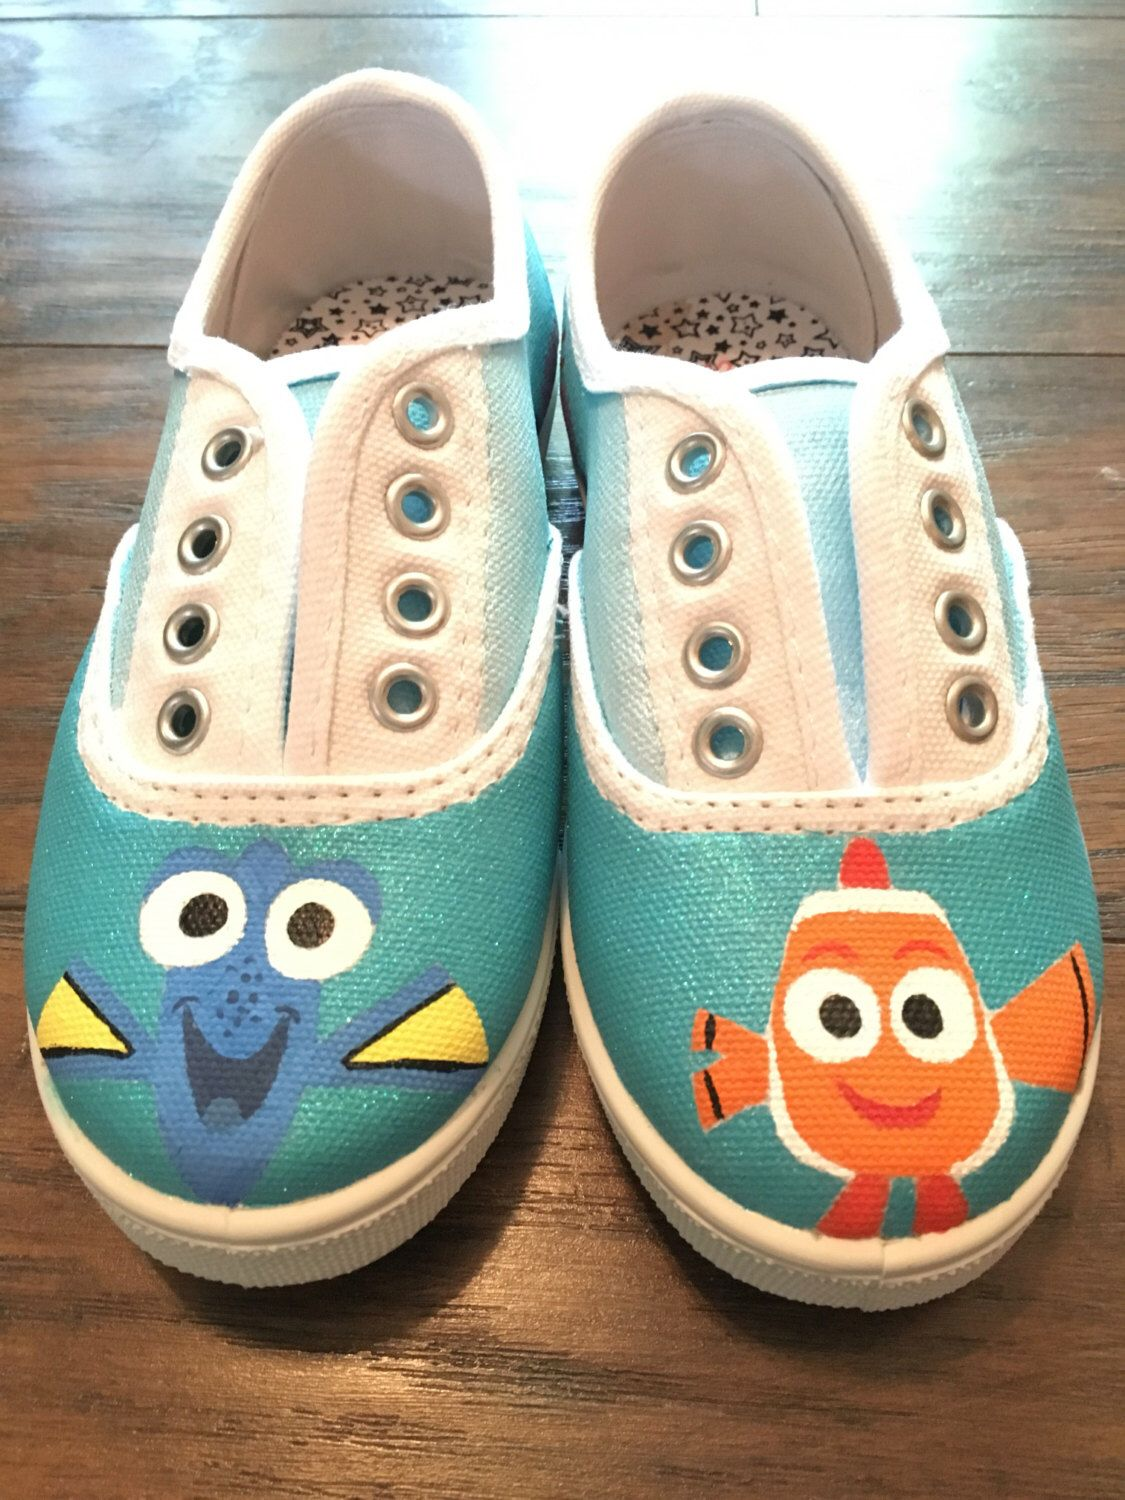 7f5f1dee40d14 Pin by The_Cheshire_Rose on DIY Shoe Designs | Finding dory, Dory ...